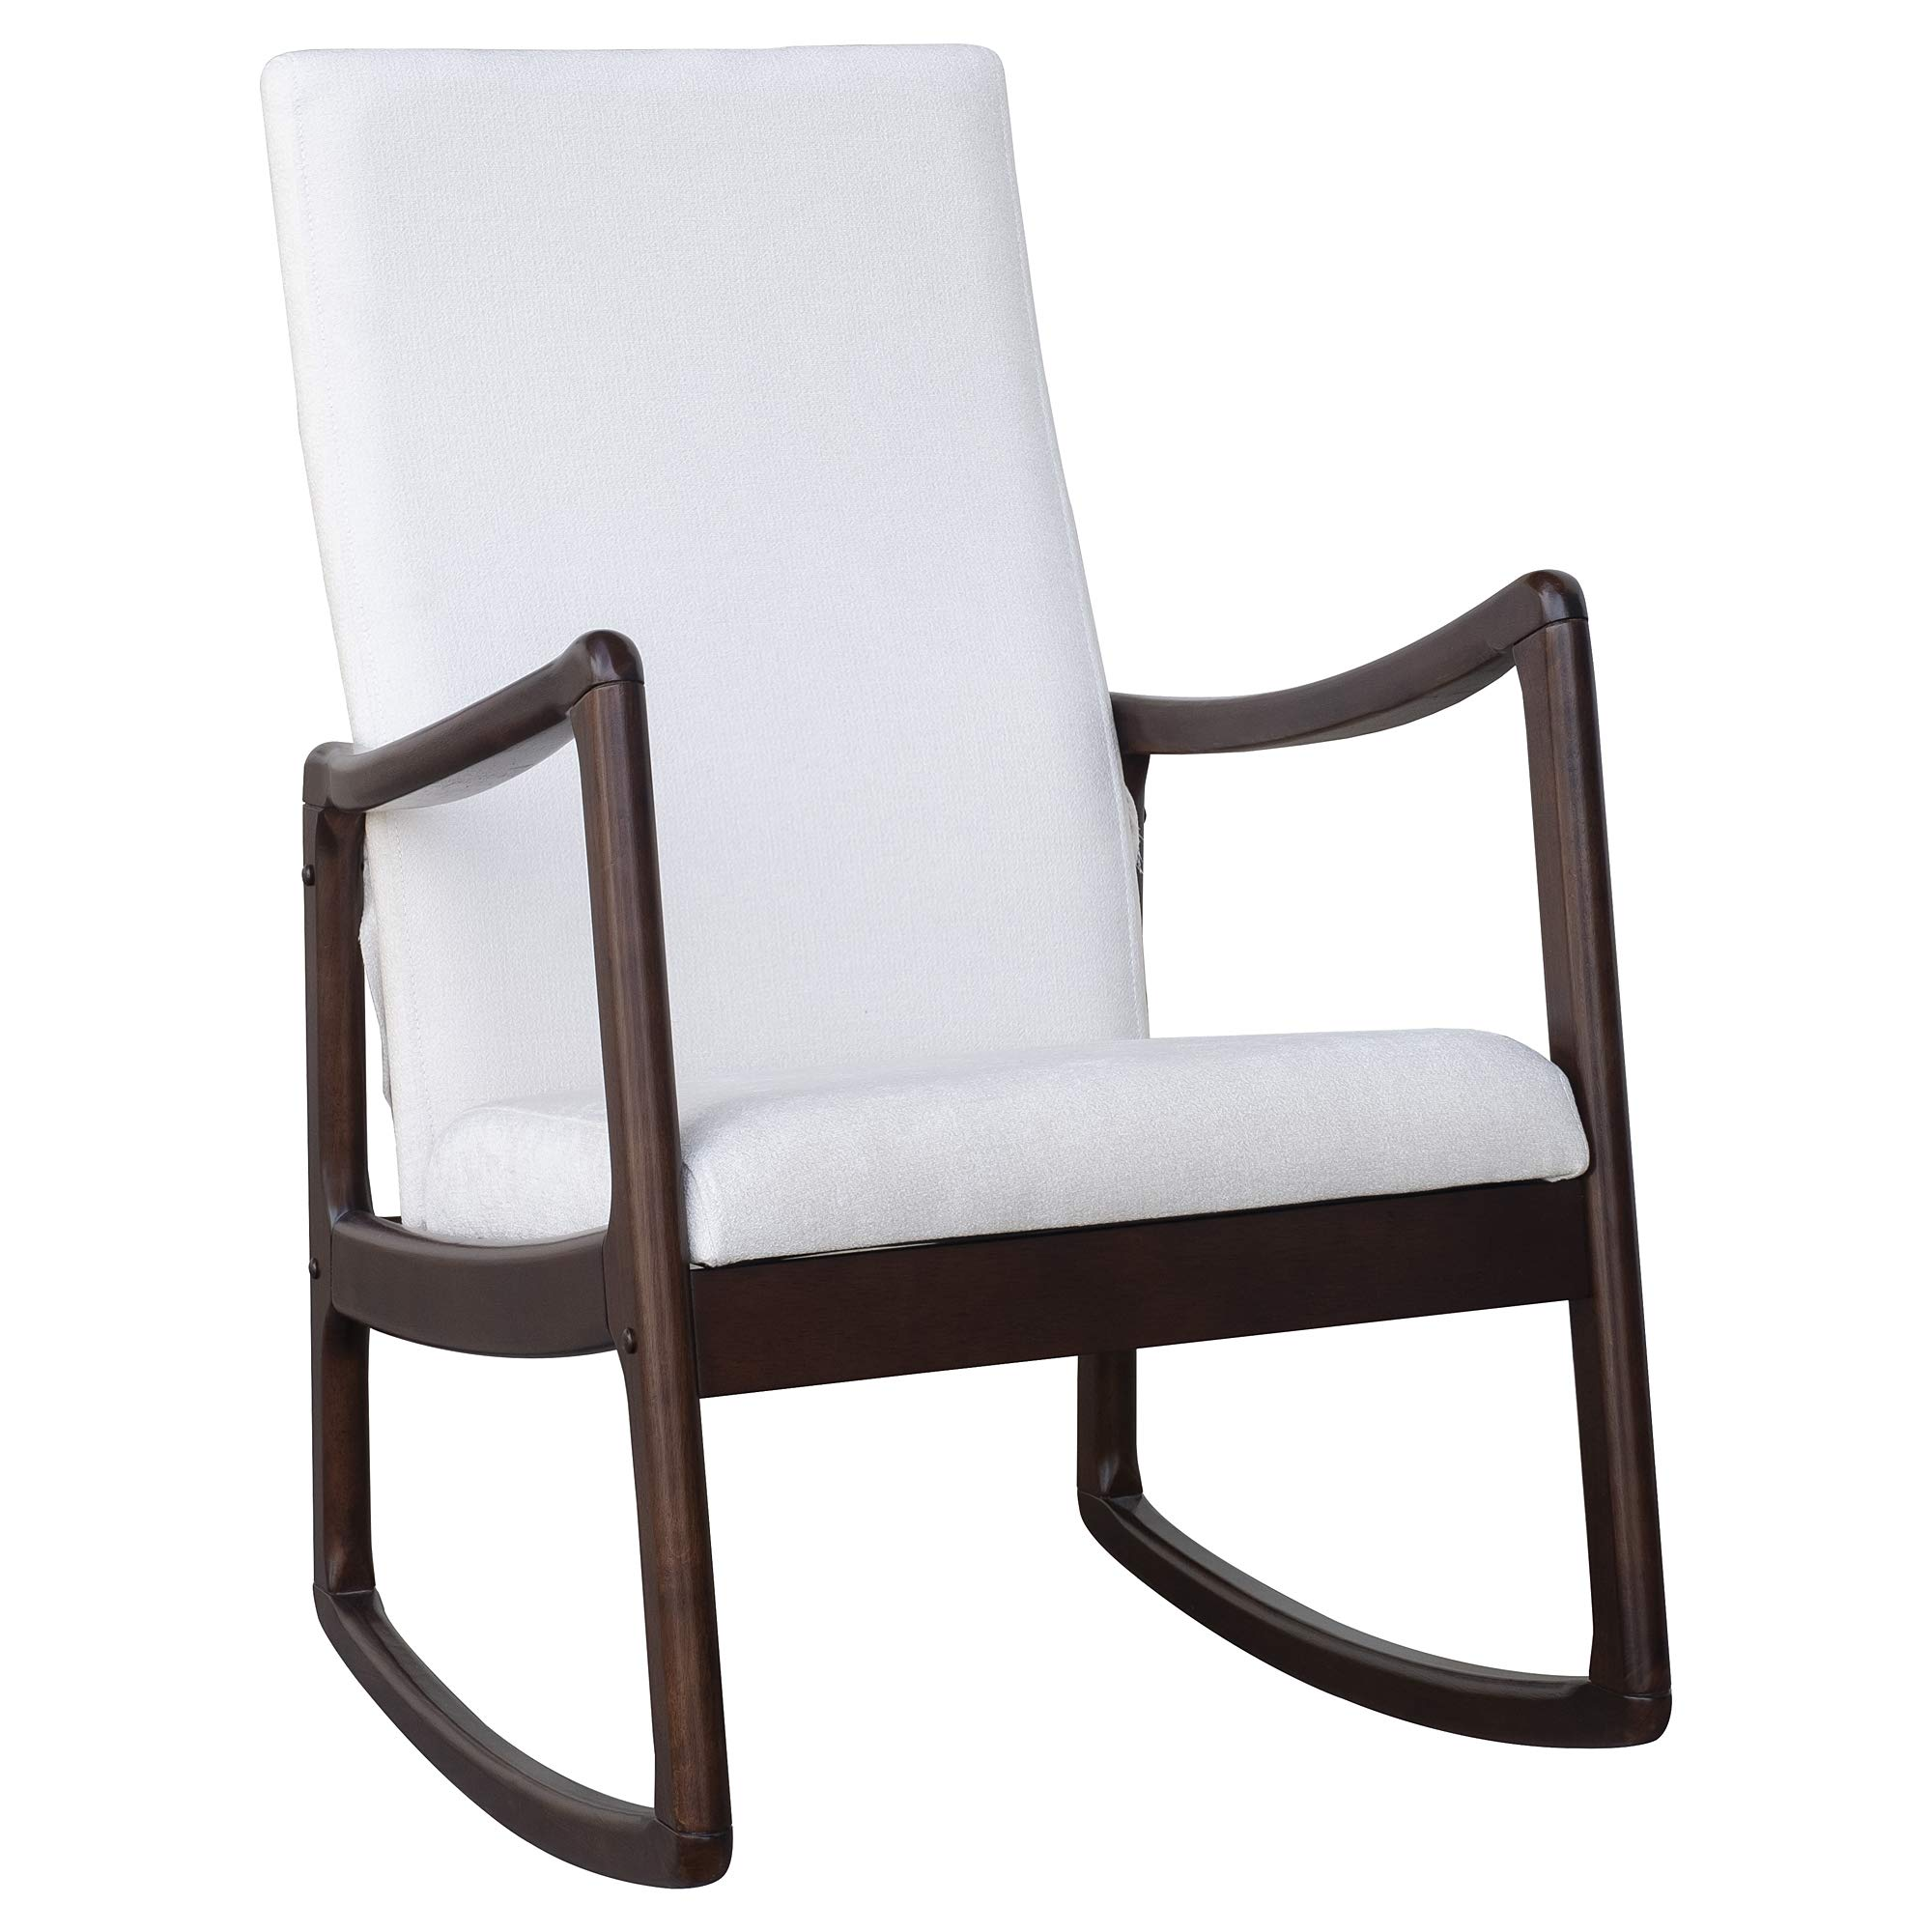 HOMCOM Modern Wood Rocking Chair Indoor Porch Furniture for Living Room -Coffee Brown/White with Cushion